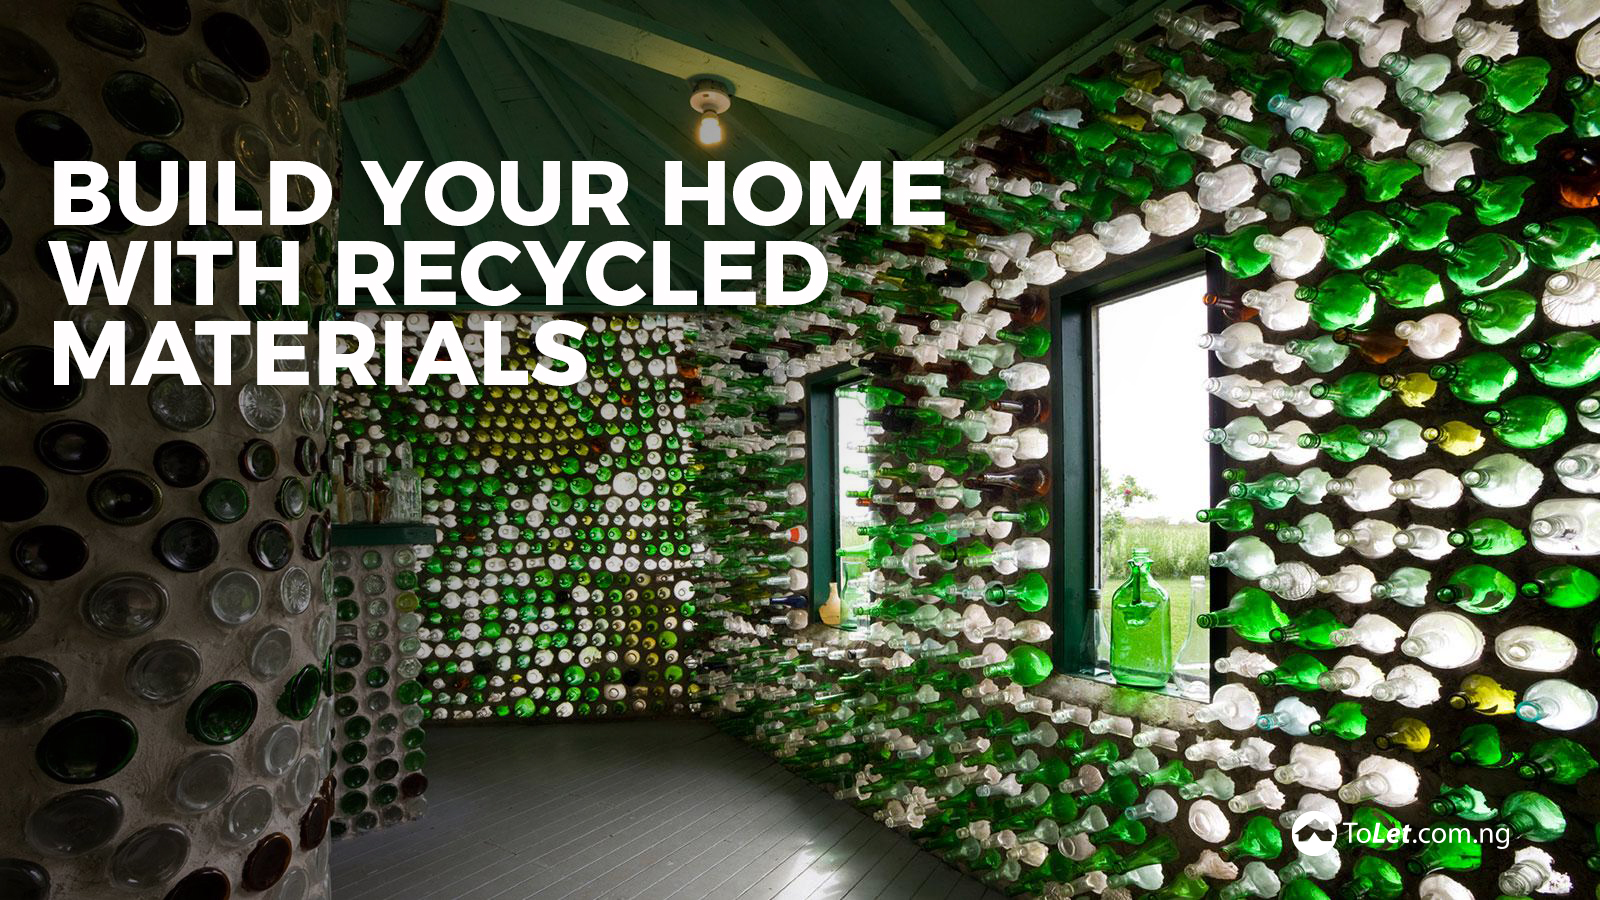 Save cost build your home with recycled materials tolet for Build your home